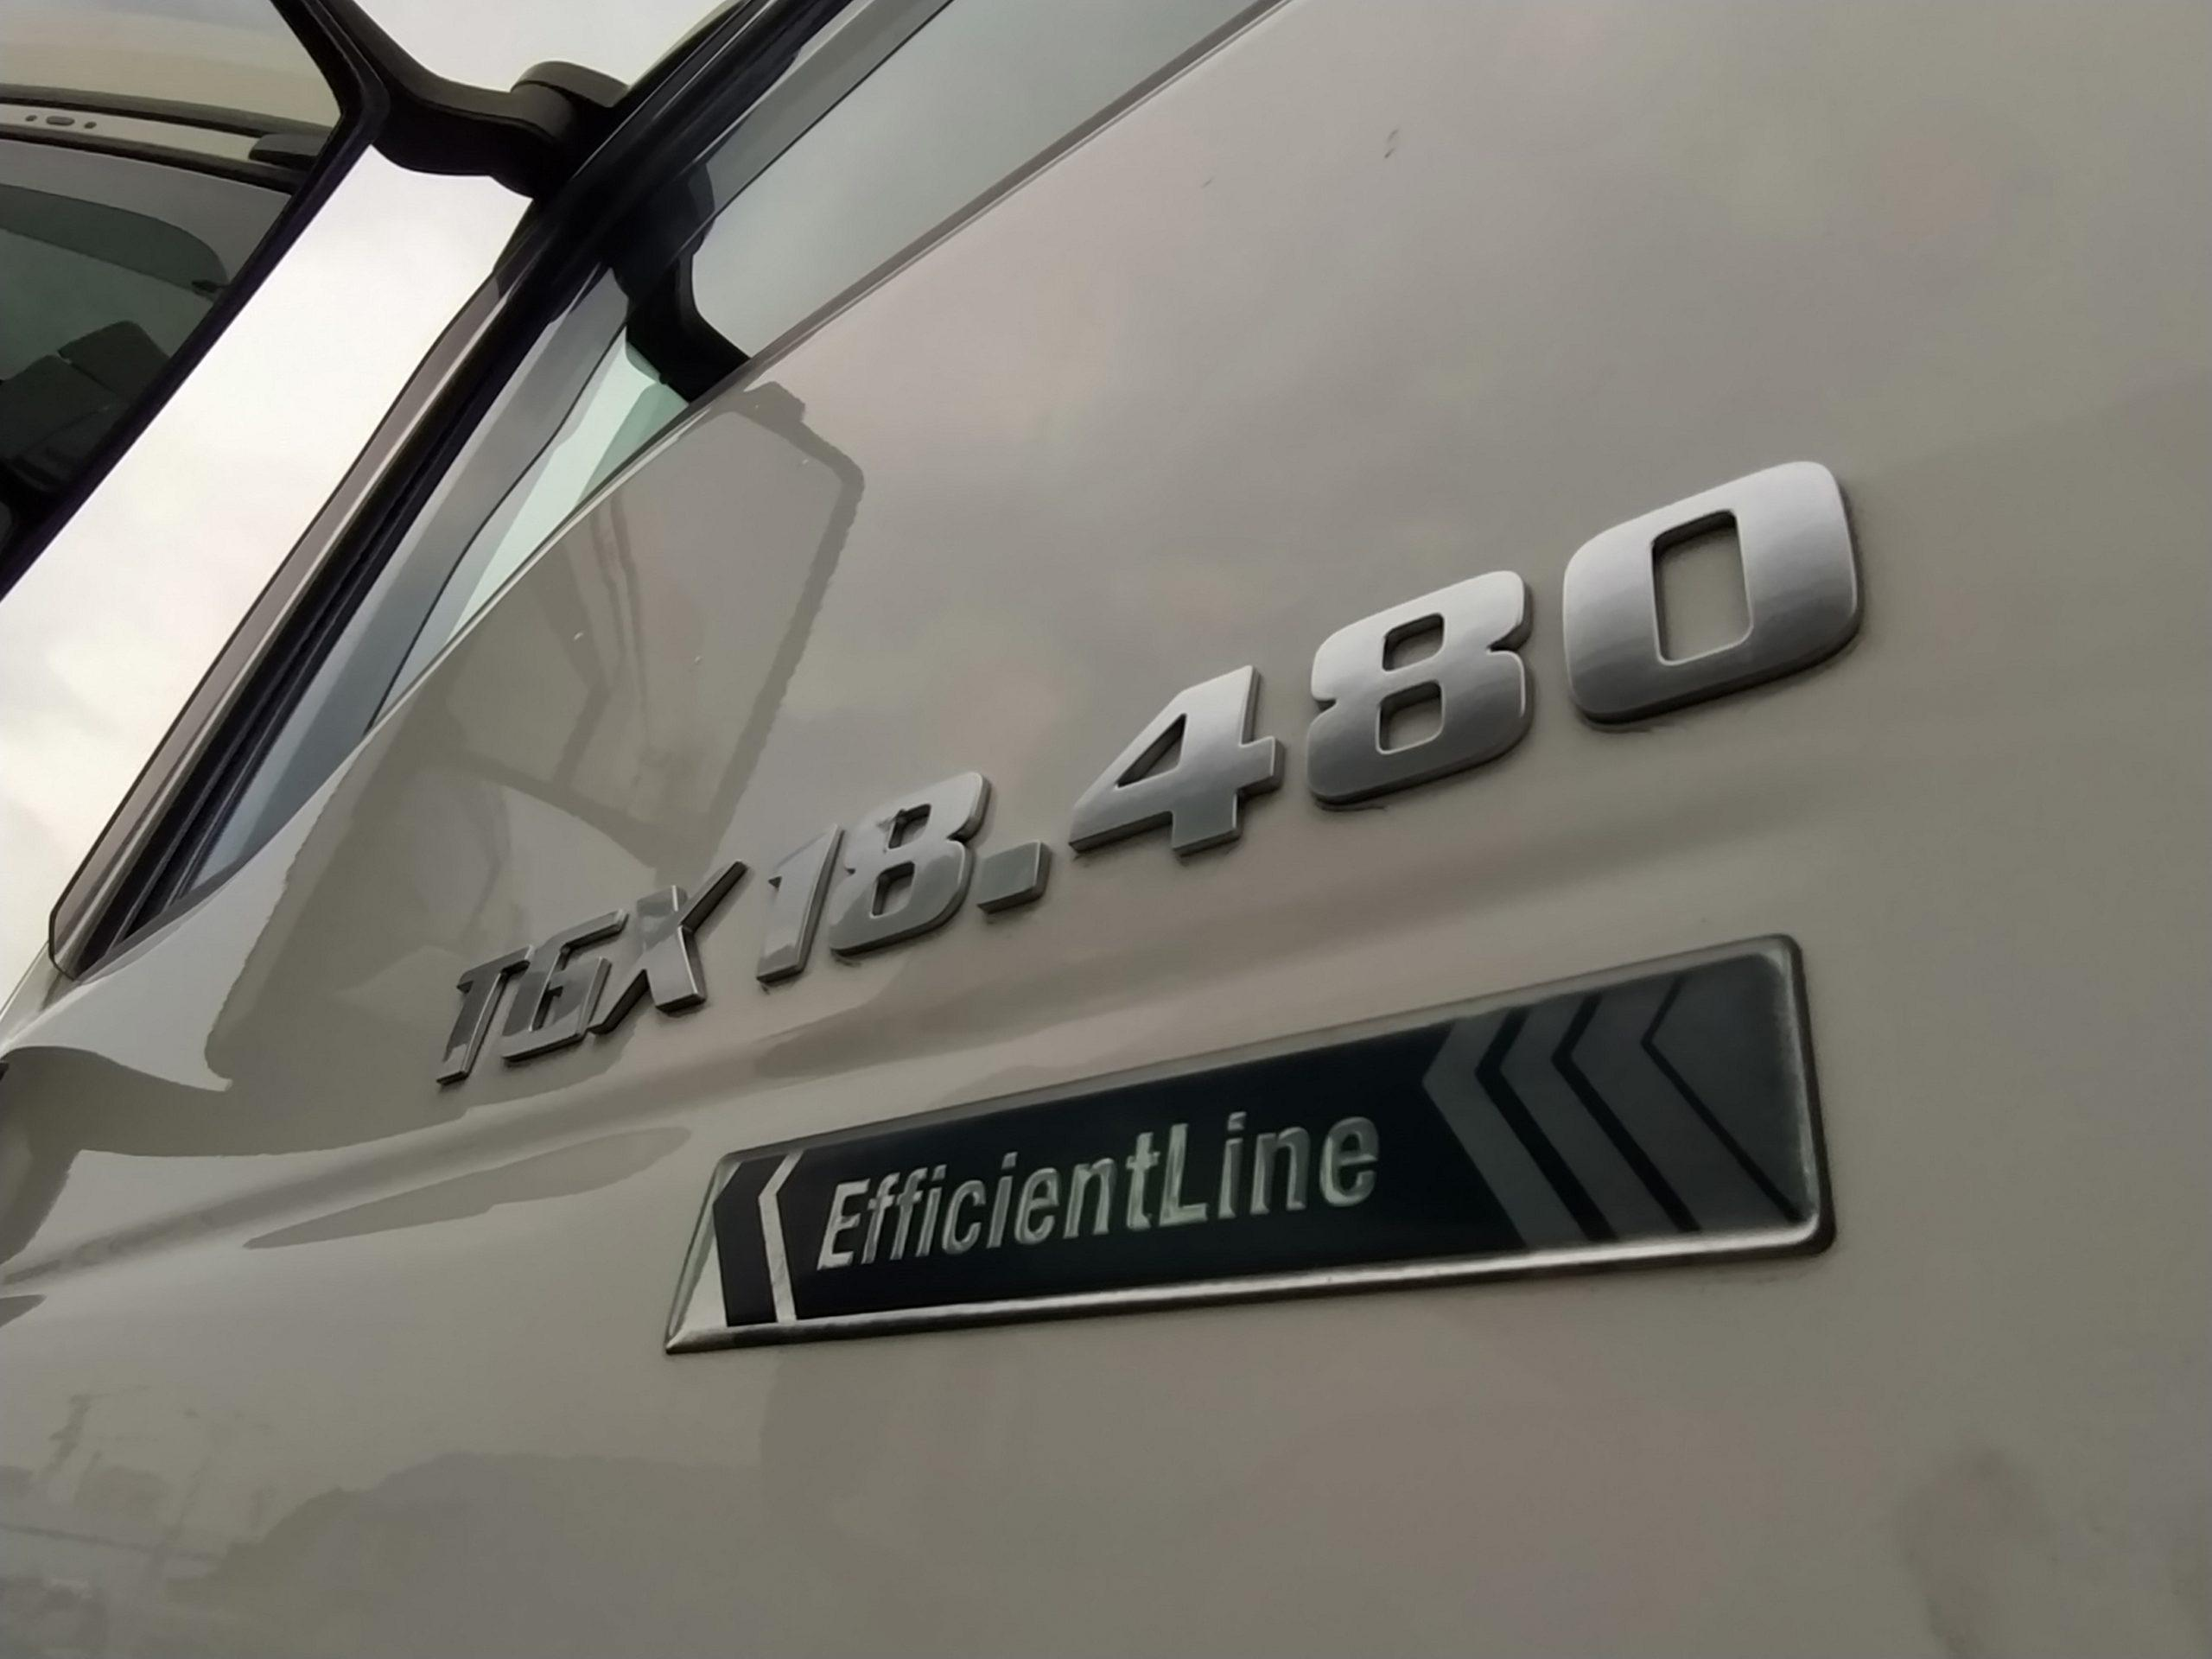 TGX 18.480 BLS 4×2 EfficientLine Евро 6